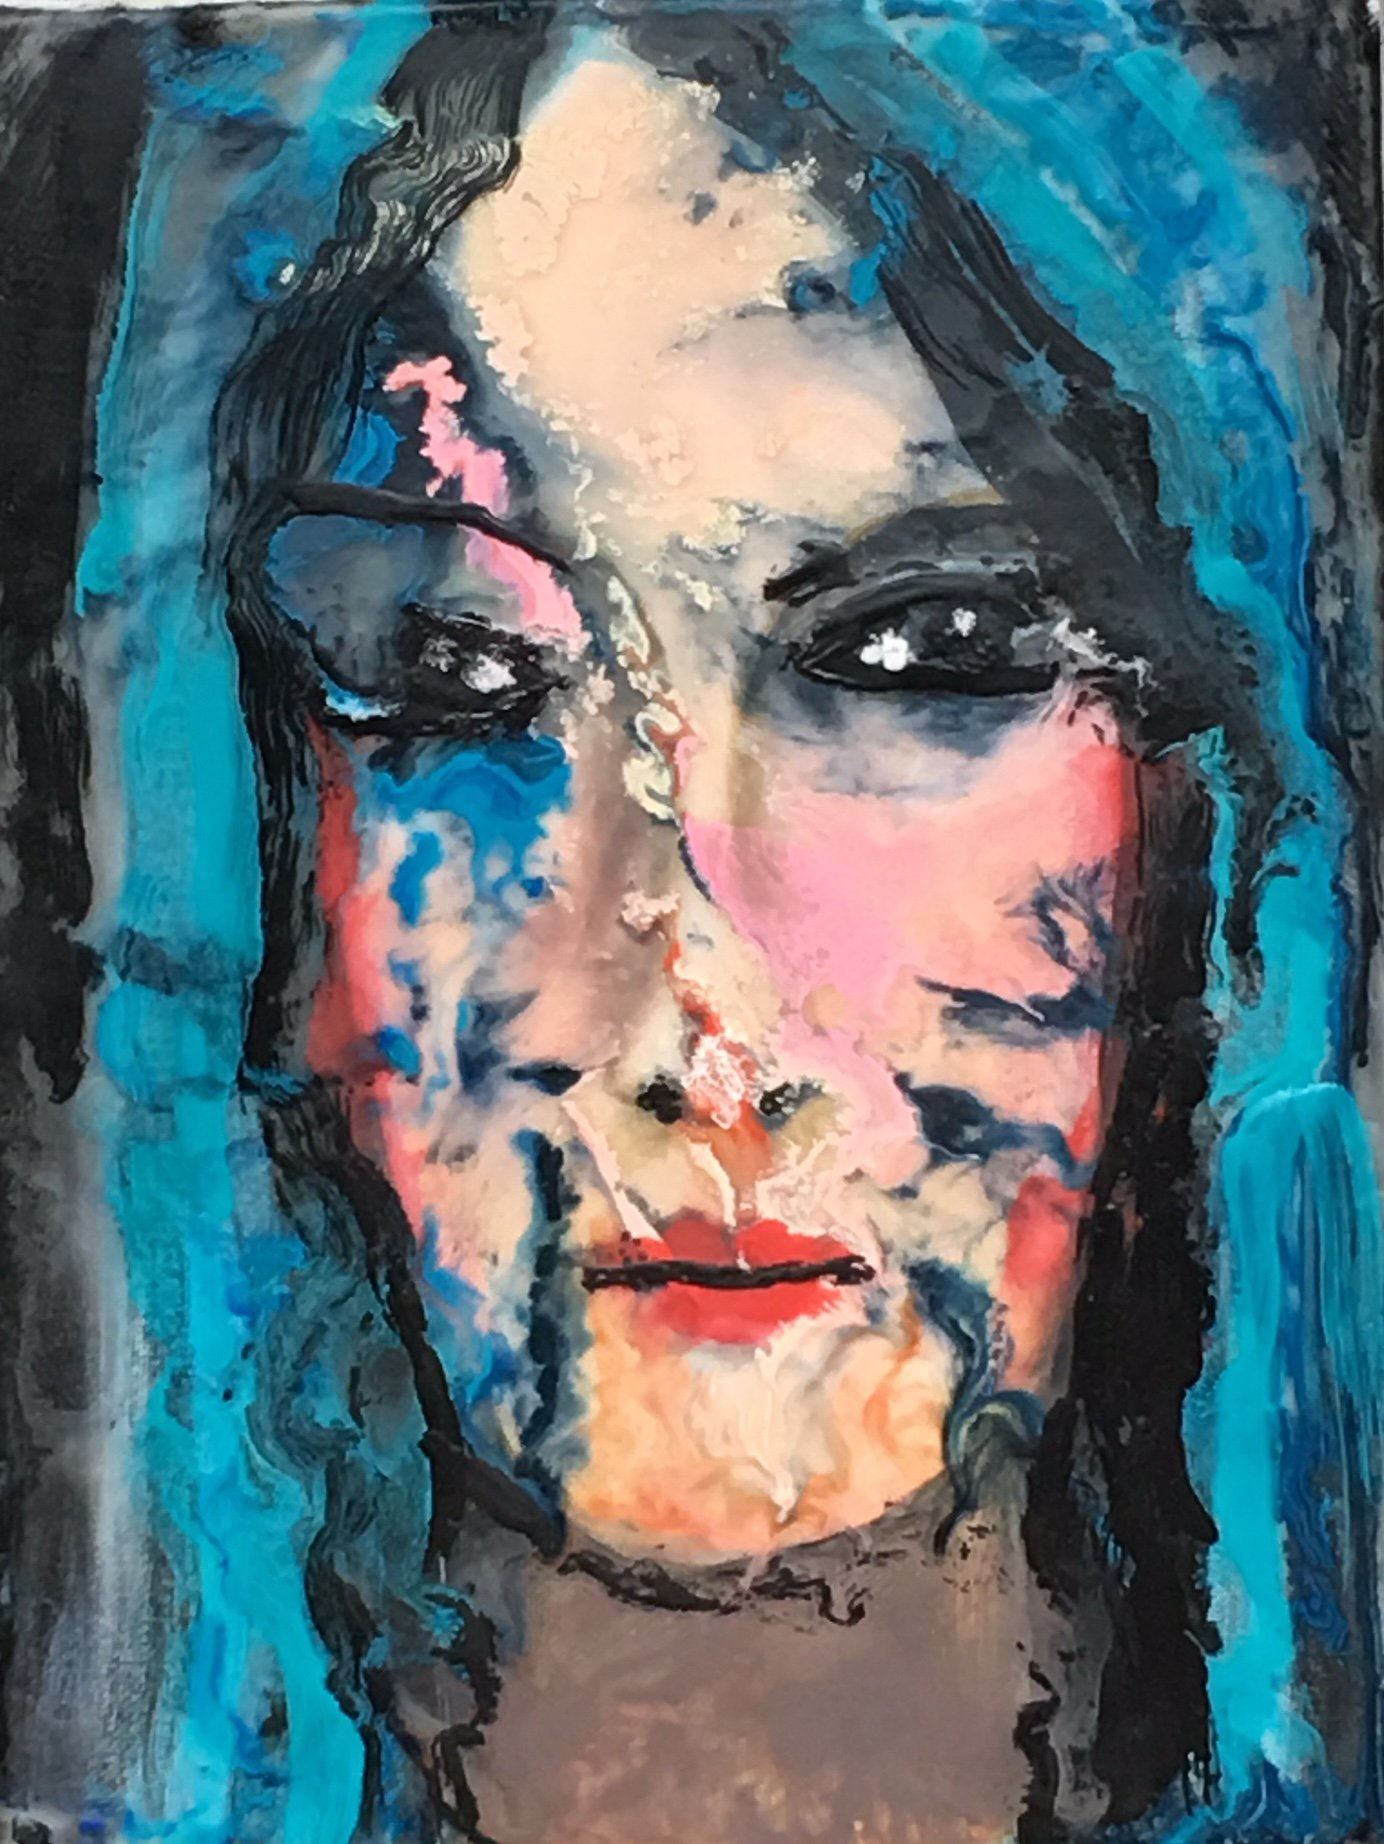 """Blue Hair"" by Catherine Hall, 12x9, encaustic on canvas"